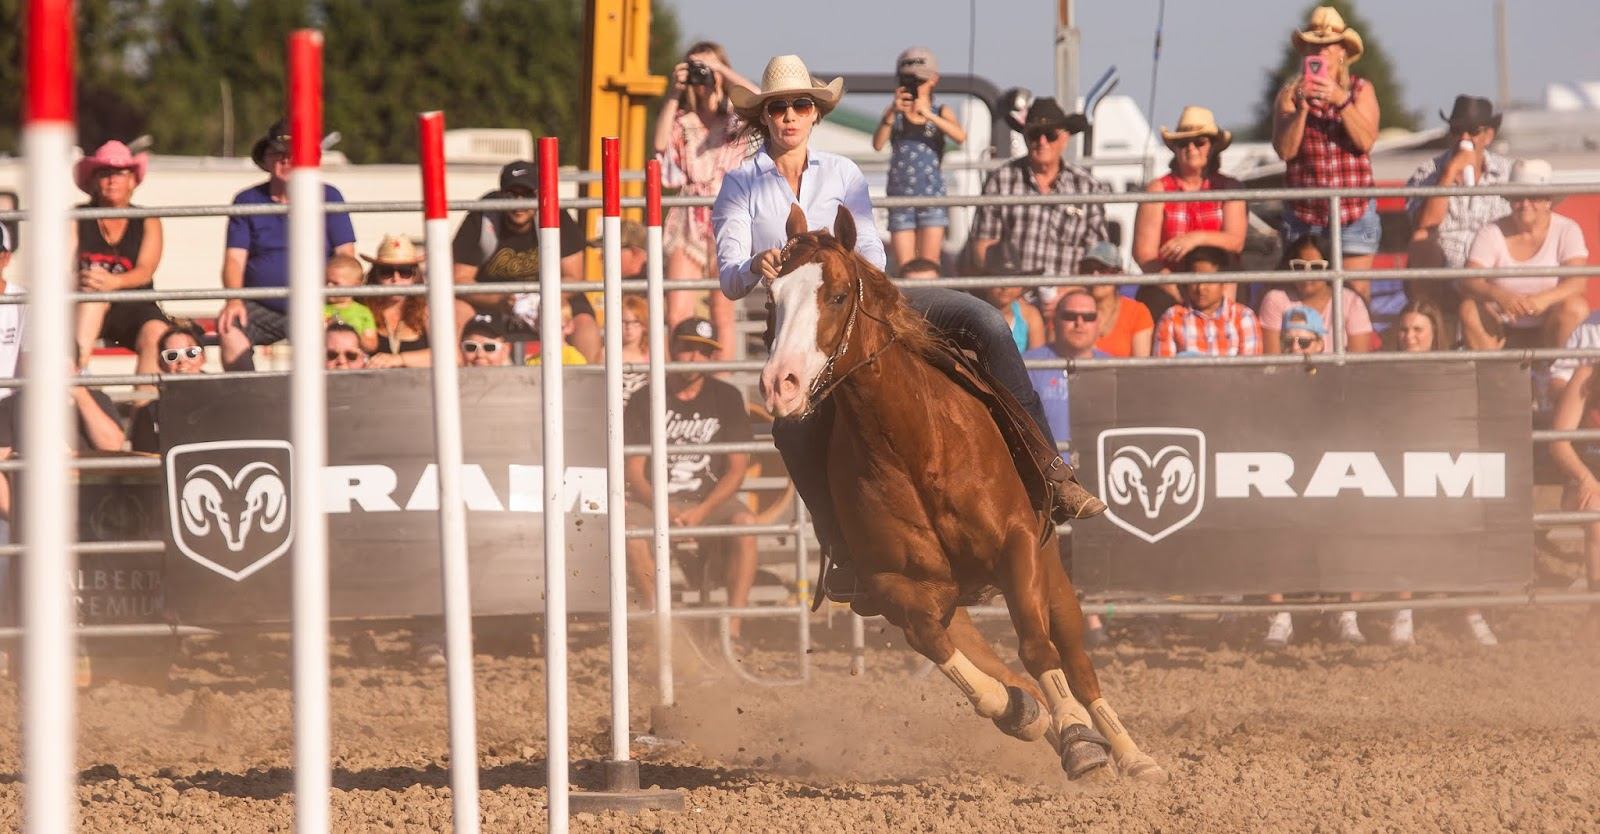 Chatham Kent Ultimate Rodeo Ultimate Rodeo Tour Ontario